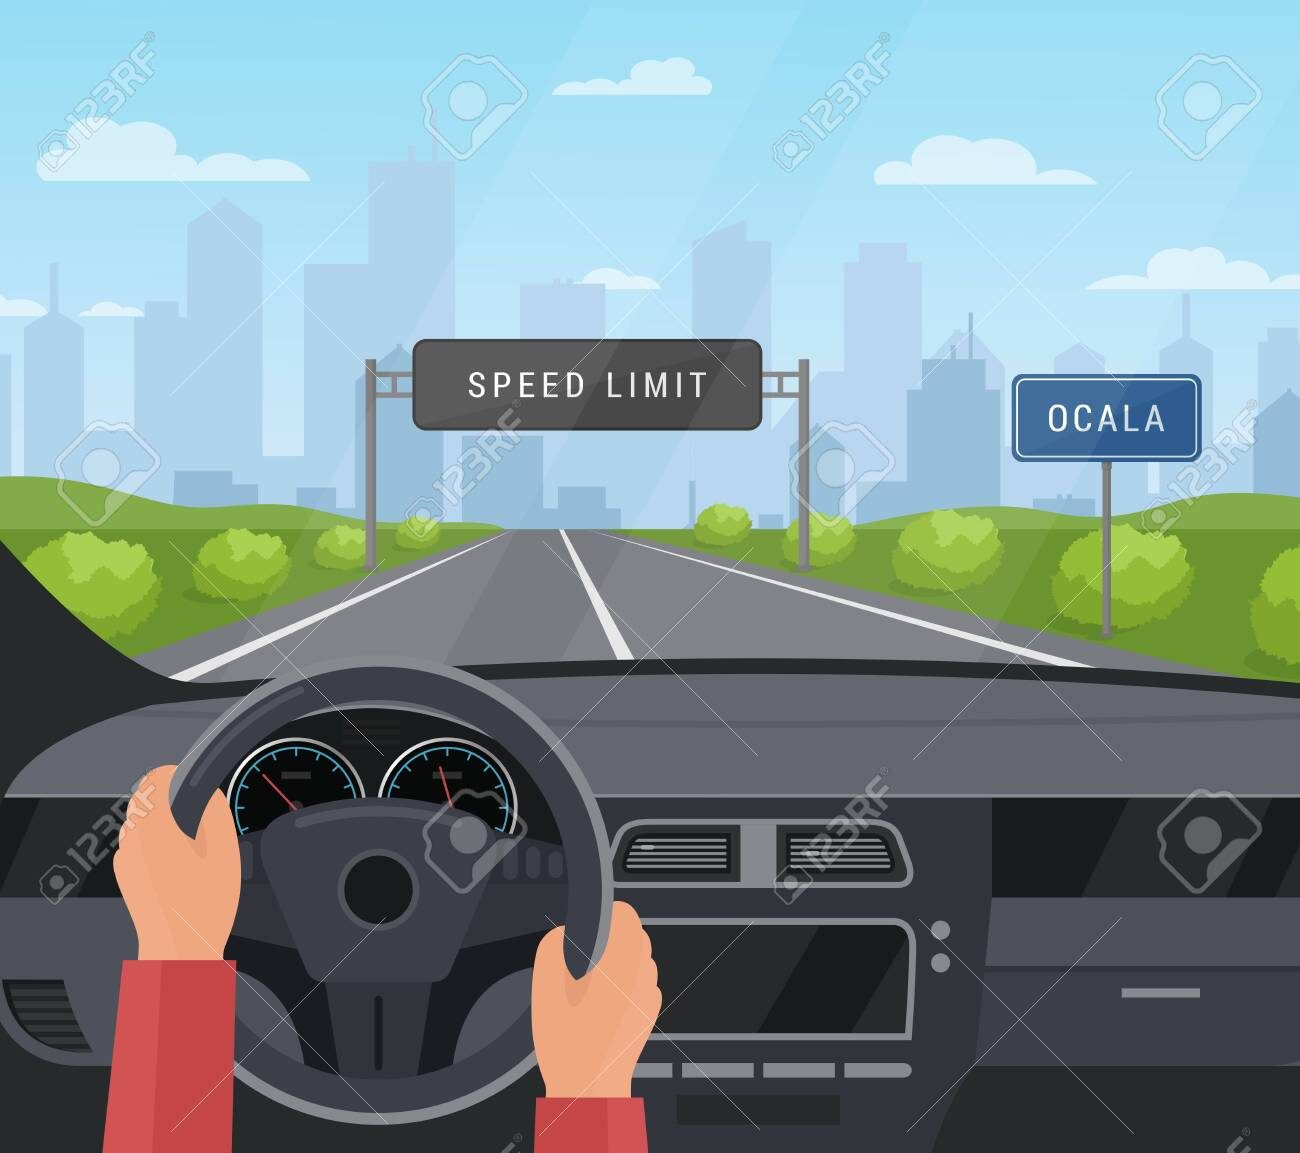 Driving car safety concept vector illustration. Cartoon flat human driver hands drive automobile on asphalt road with speed limit, safe sign on highway. Dashboard inside car interior view background - 153060137